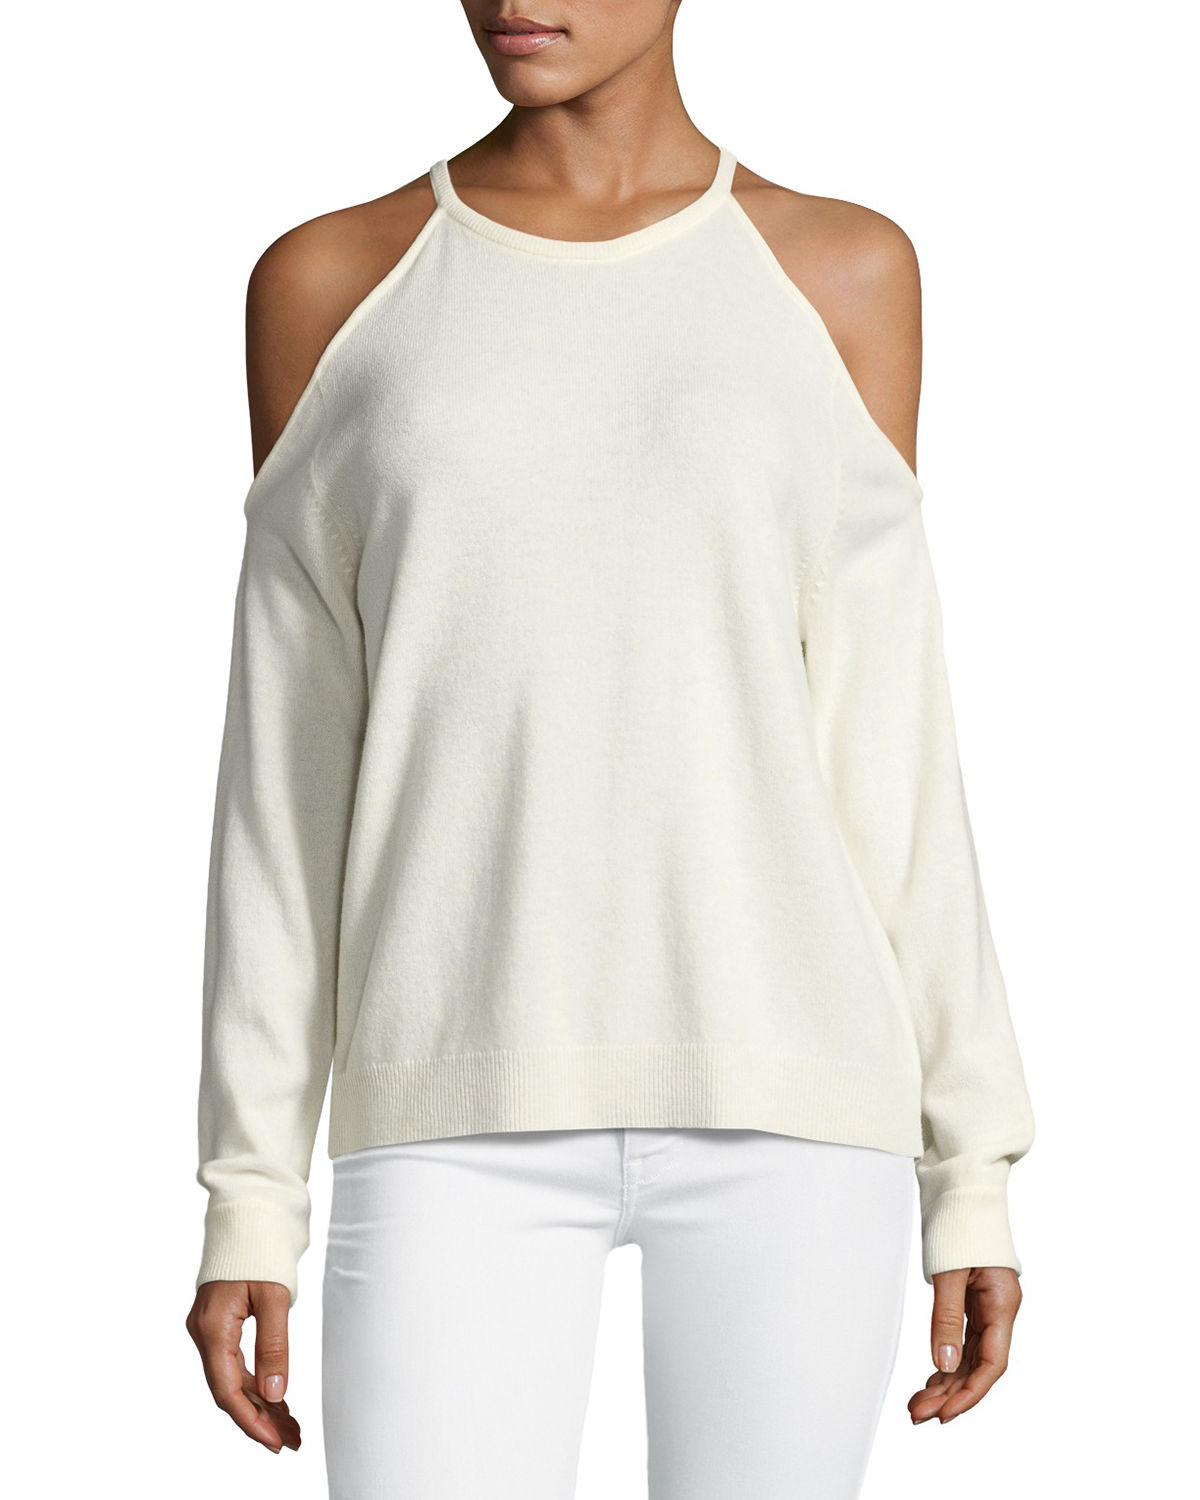 Toleema B Cashmere Cold-Shoulder Sweater